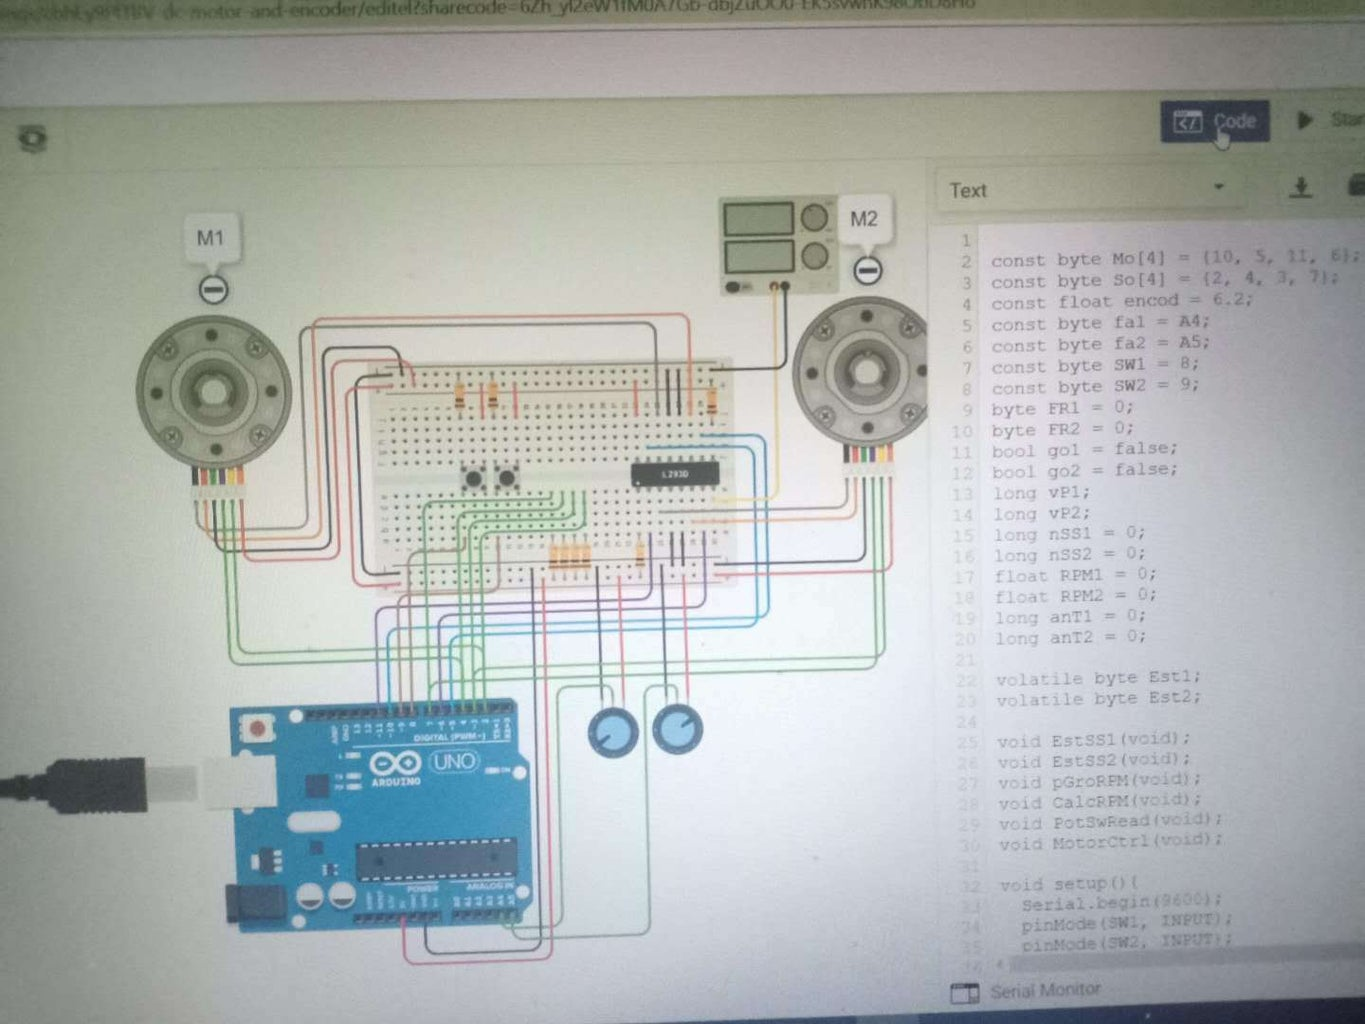 DC Motor and Encoder for Position and Speed Control